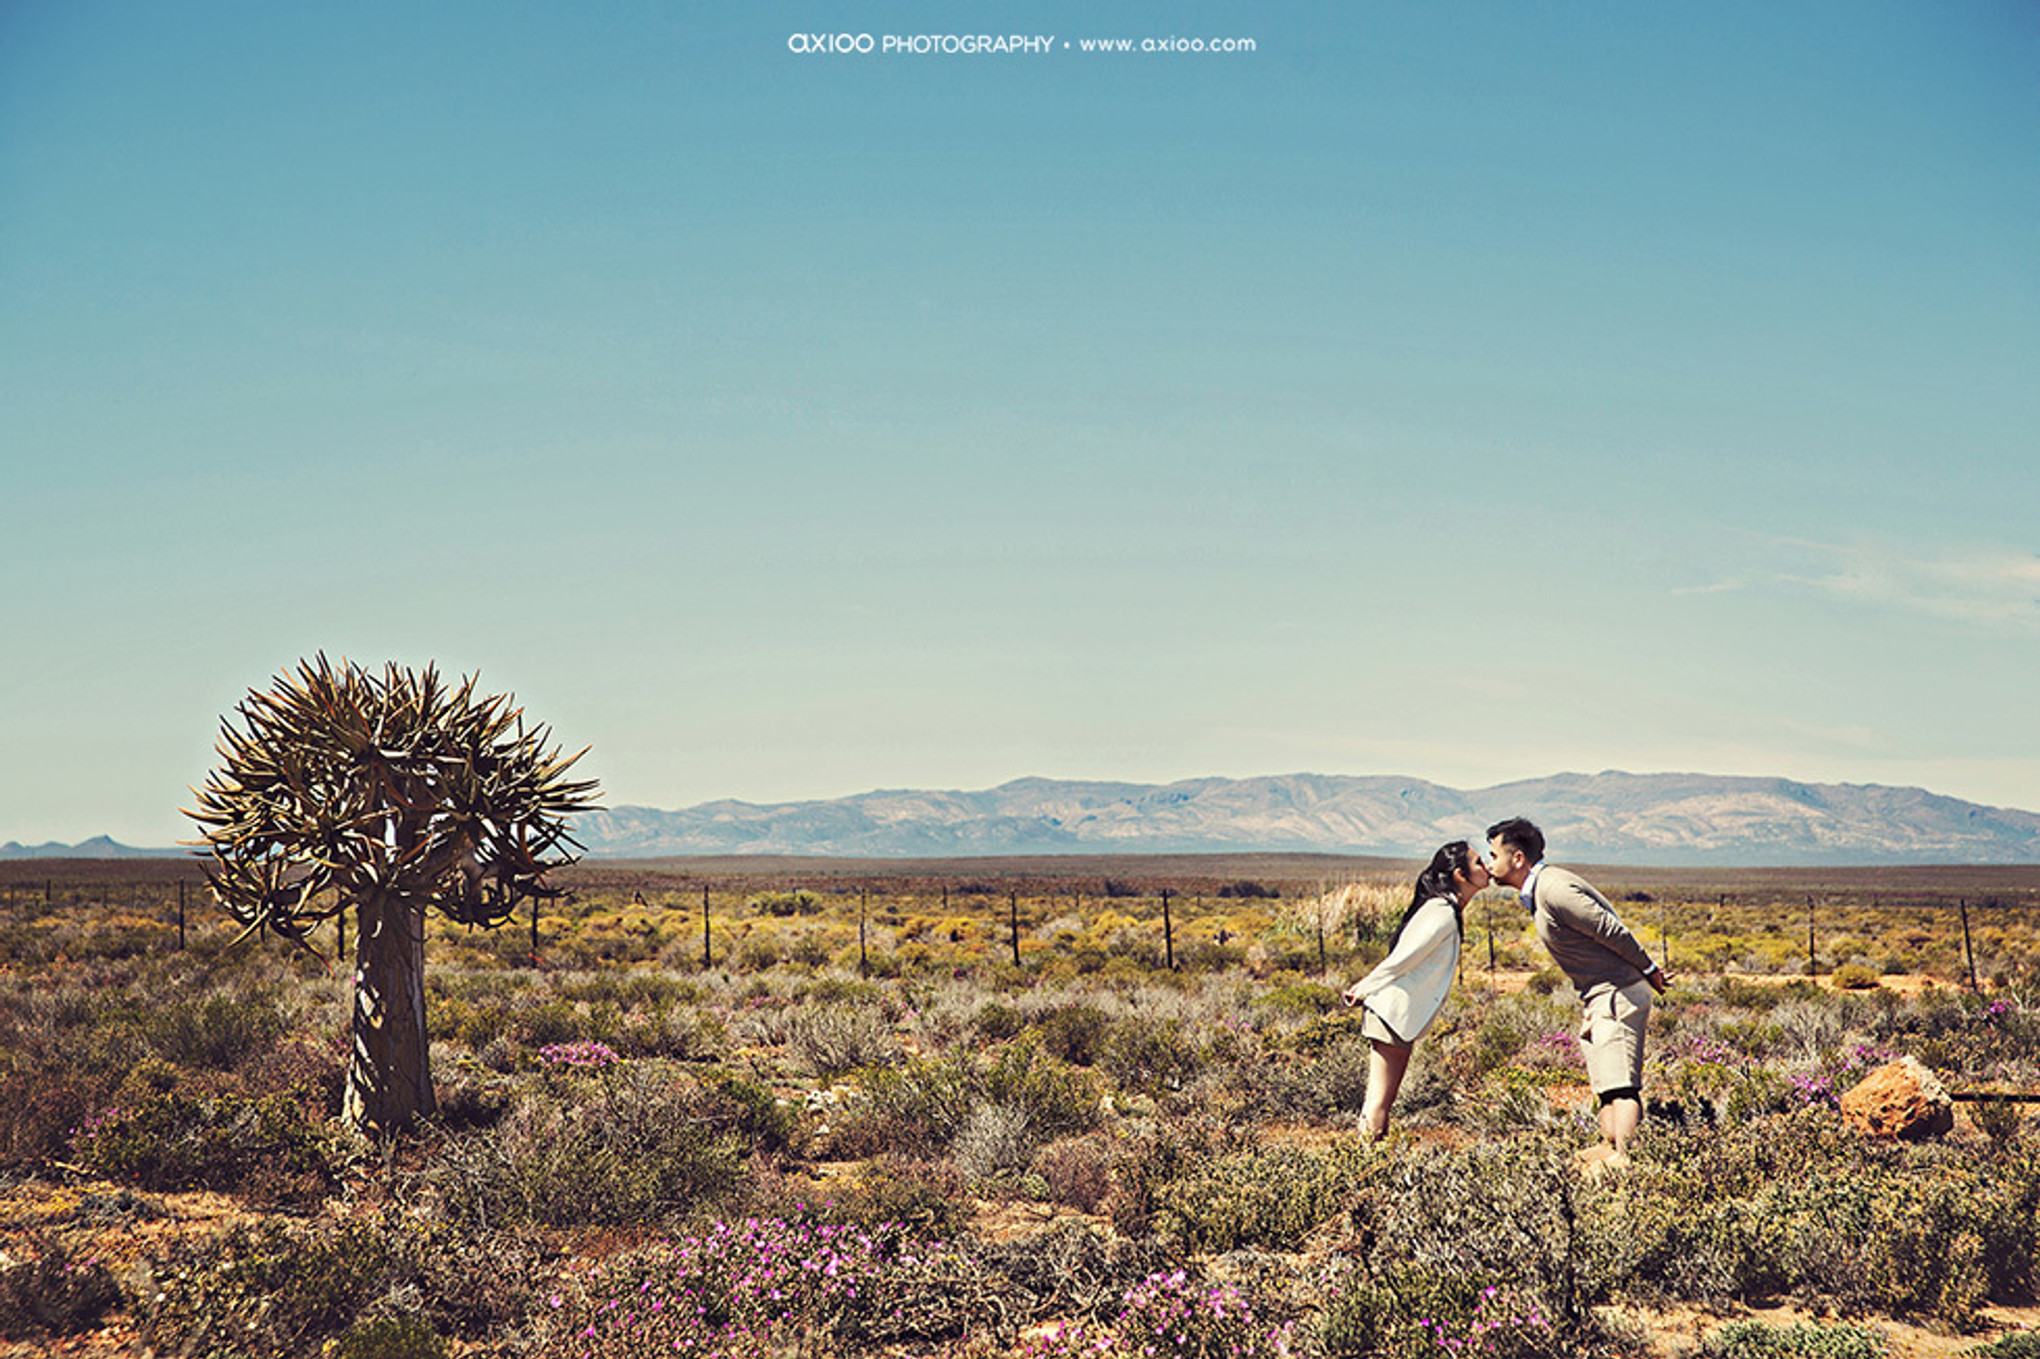 An Adventurous Safari Pre-Wedding Shoot in South Africa